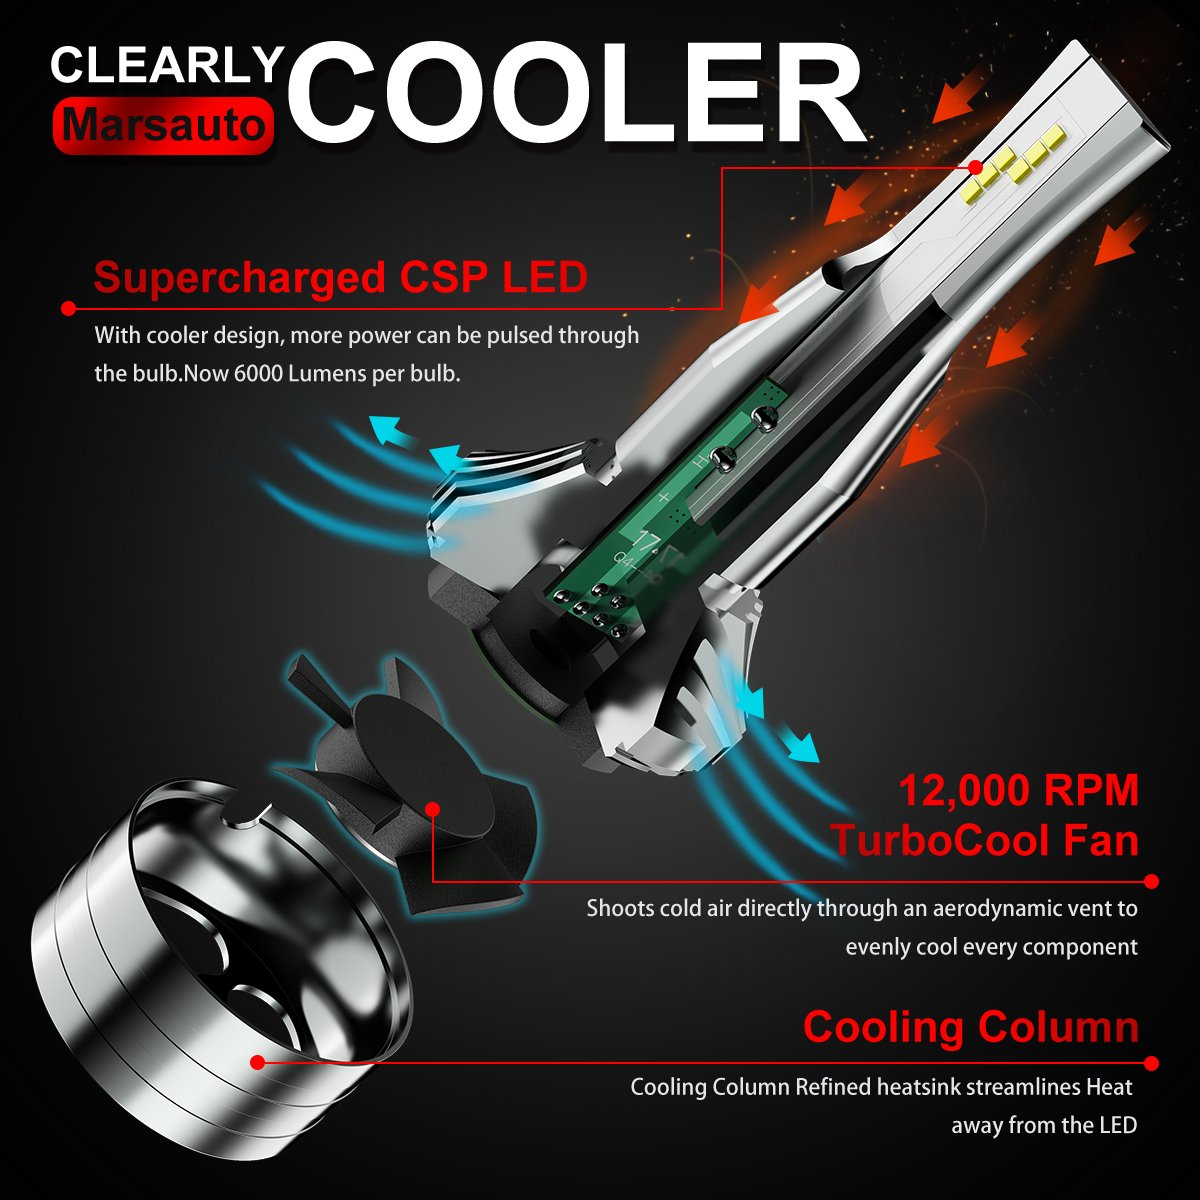 H11 Low Beam 9005 High beam LED Headlight Combo 4 Pack, 2 Sets Marsauto H9 HB3 Head Lamp Package CSP Chips 6000K